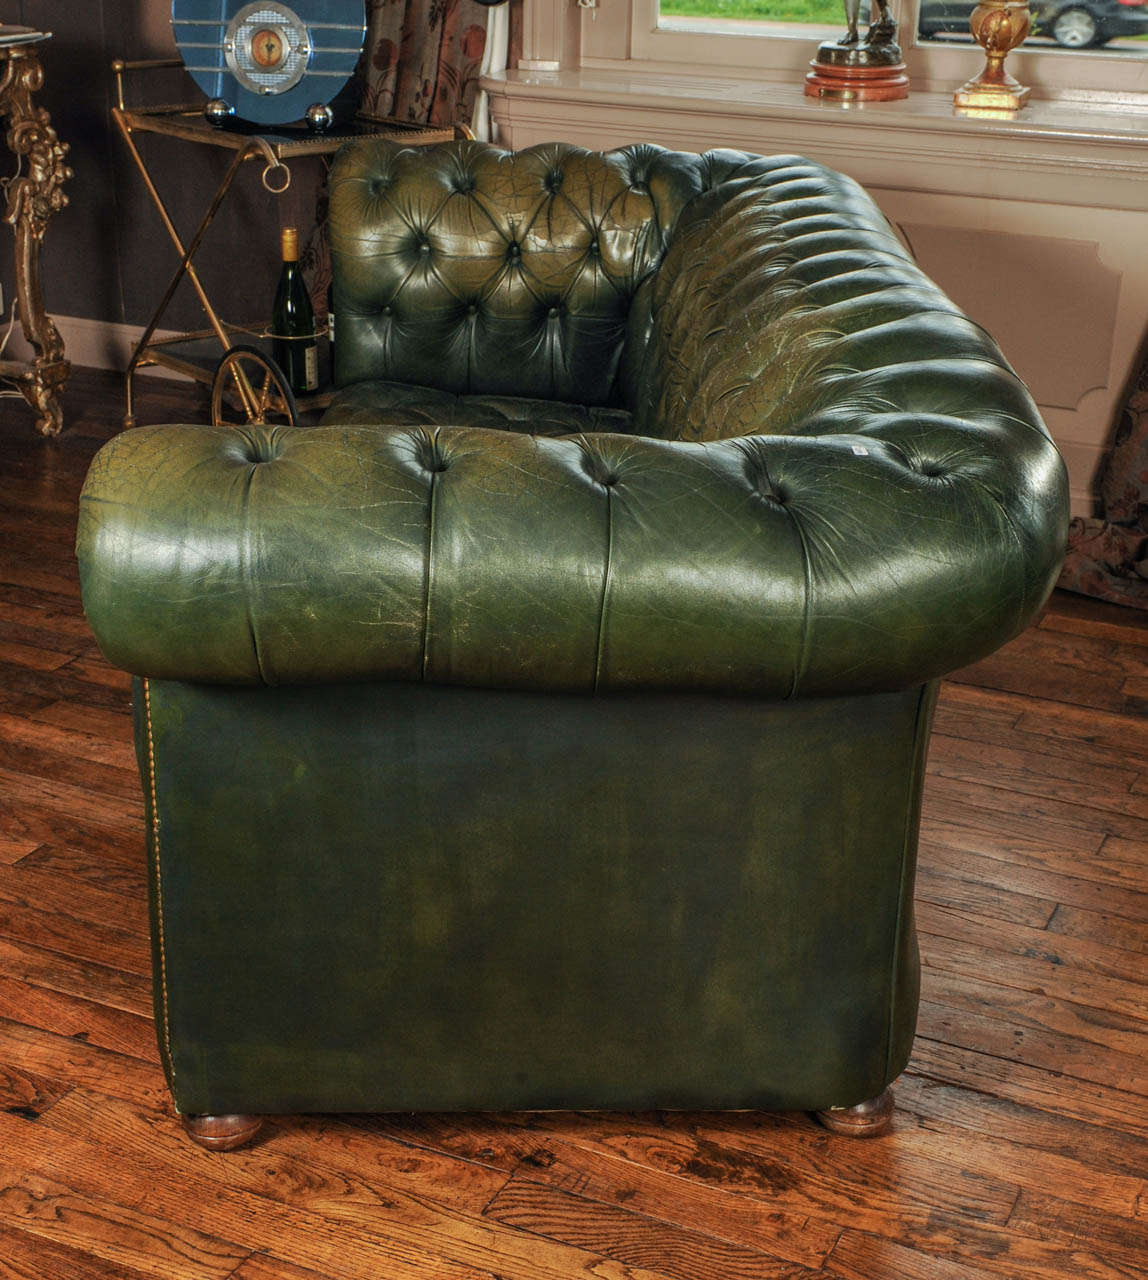 Blue leather chesterfield sofa at 1stdibs - Vintage Green Leather Chesterfield Sofa 6